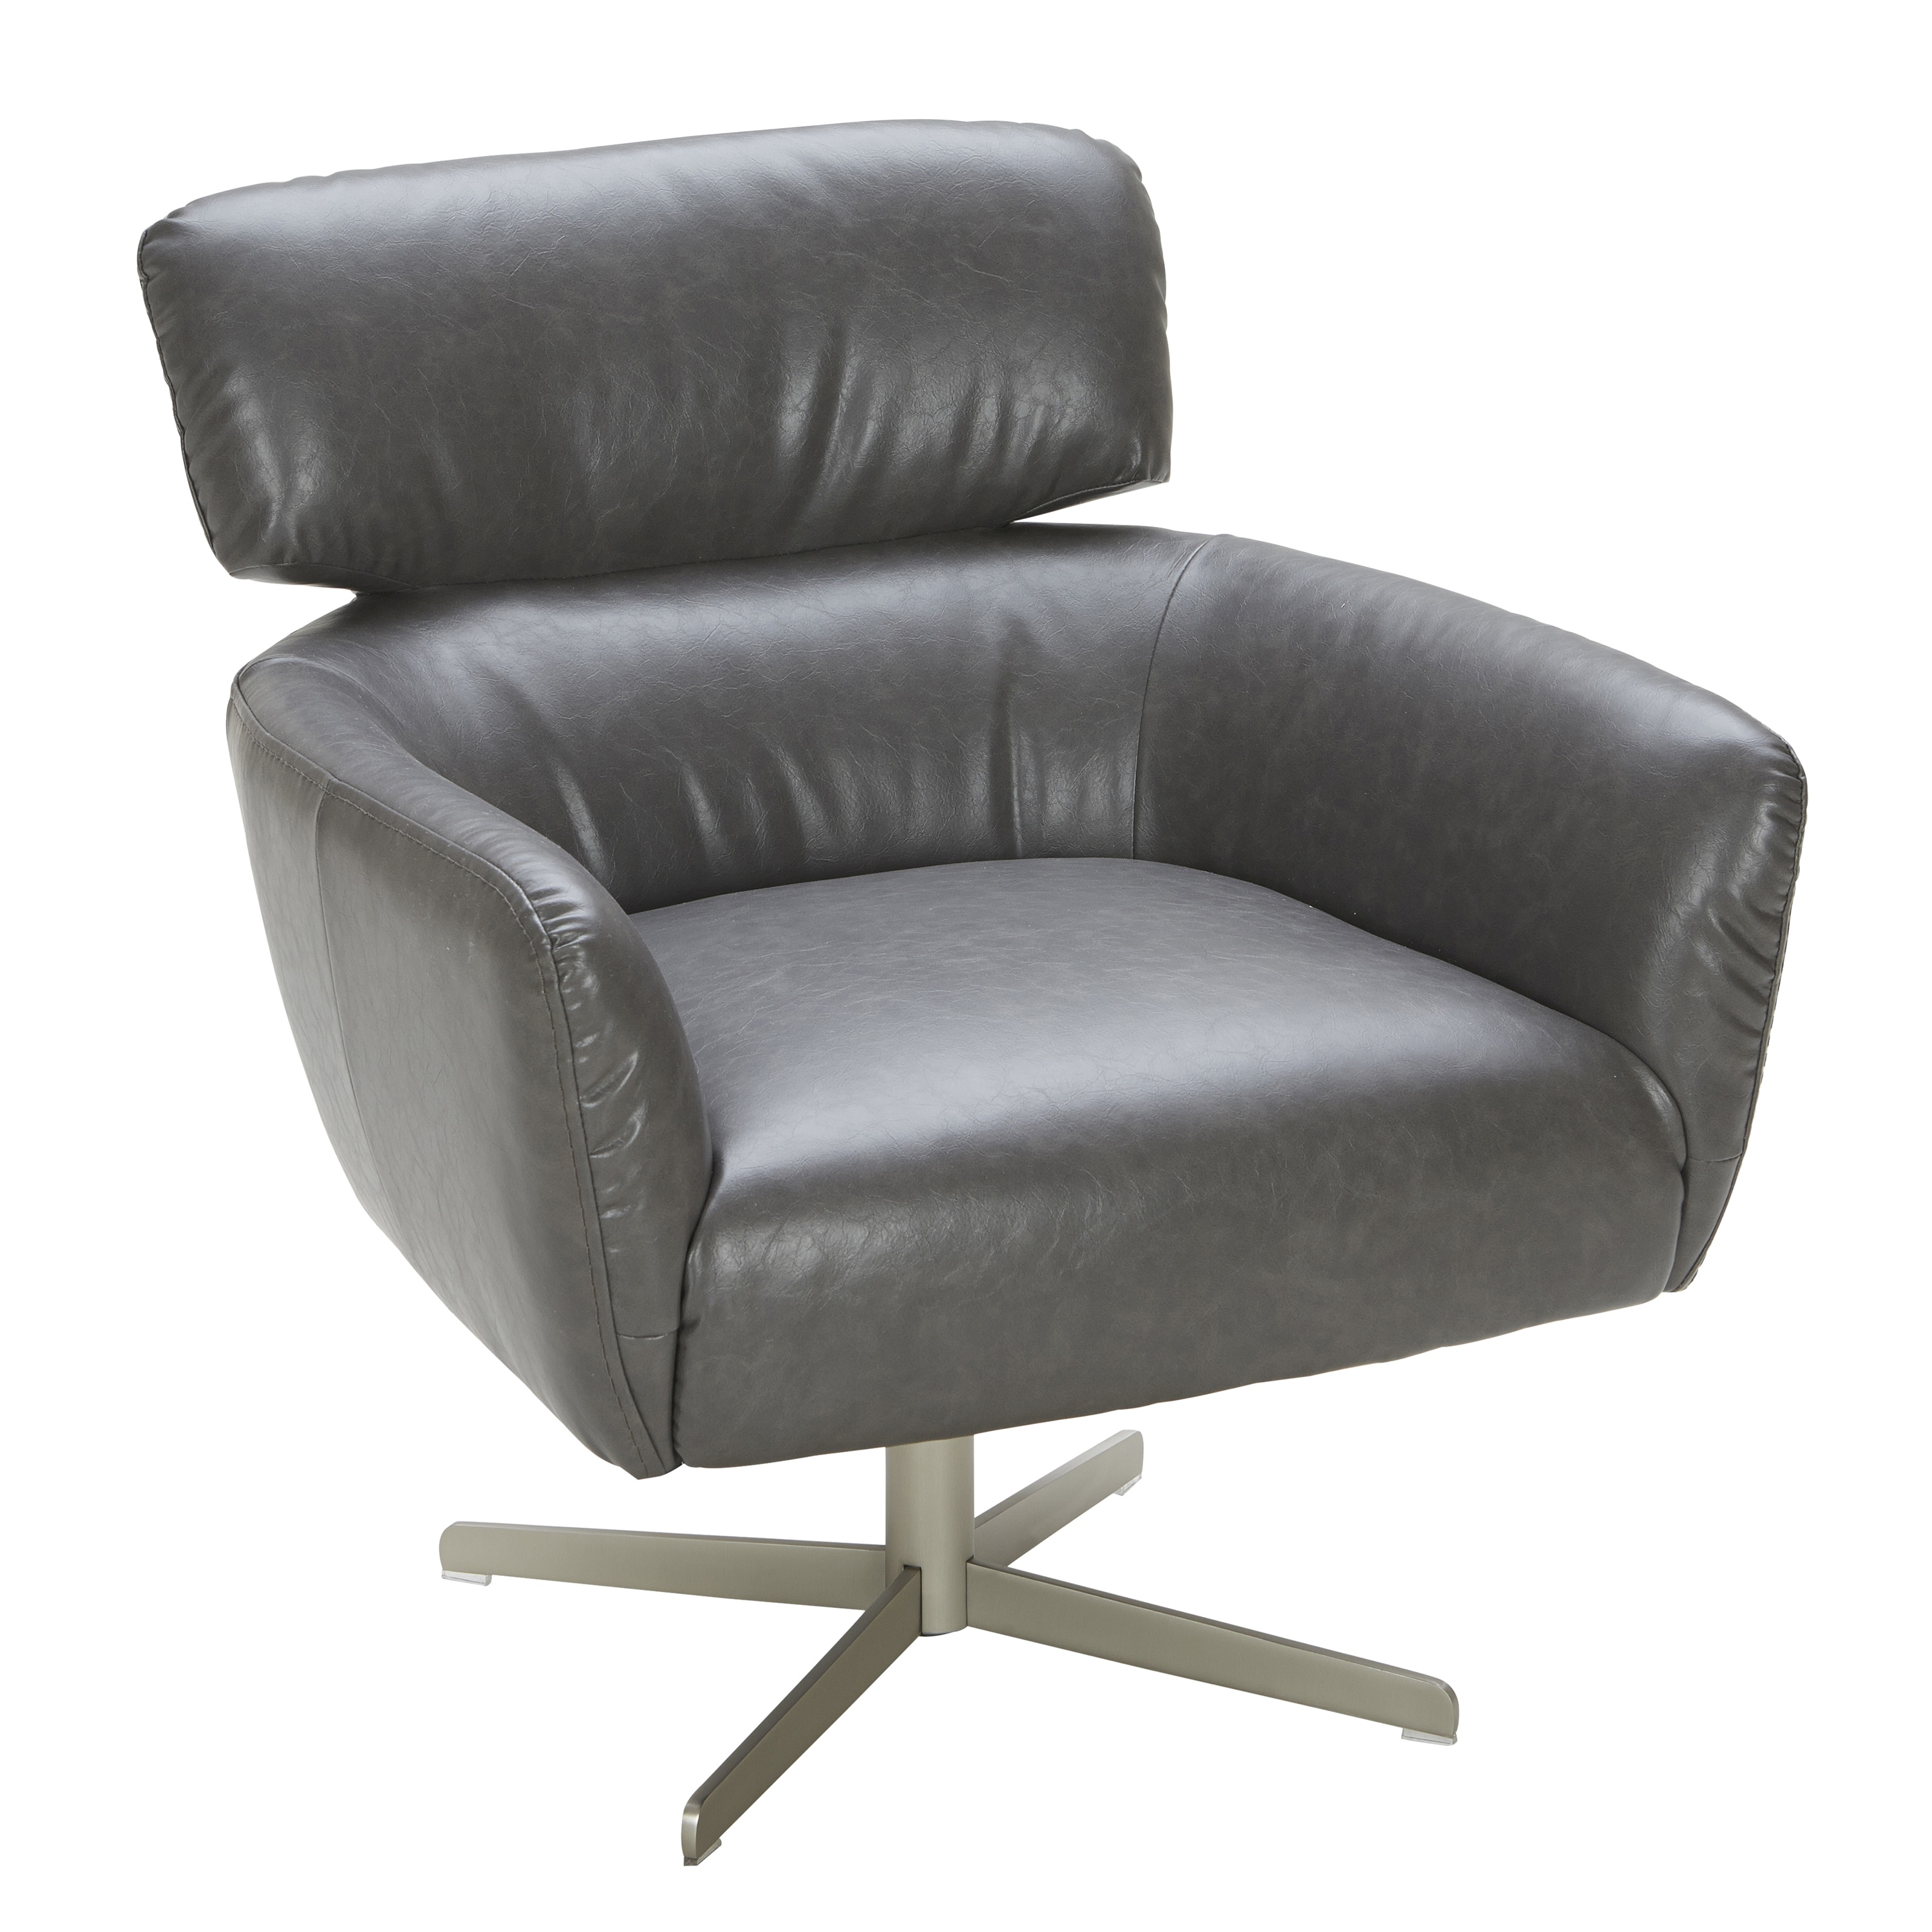 LumiSource Hartman Solid Colored Faux Leather Accent Chair   Free Shipping  Today   Overstock   18895940